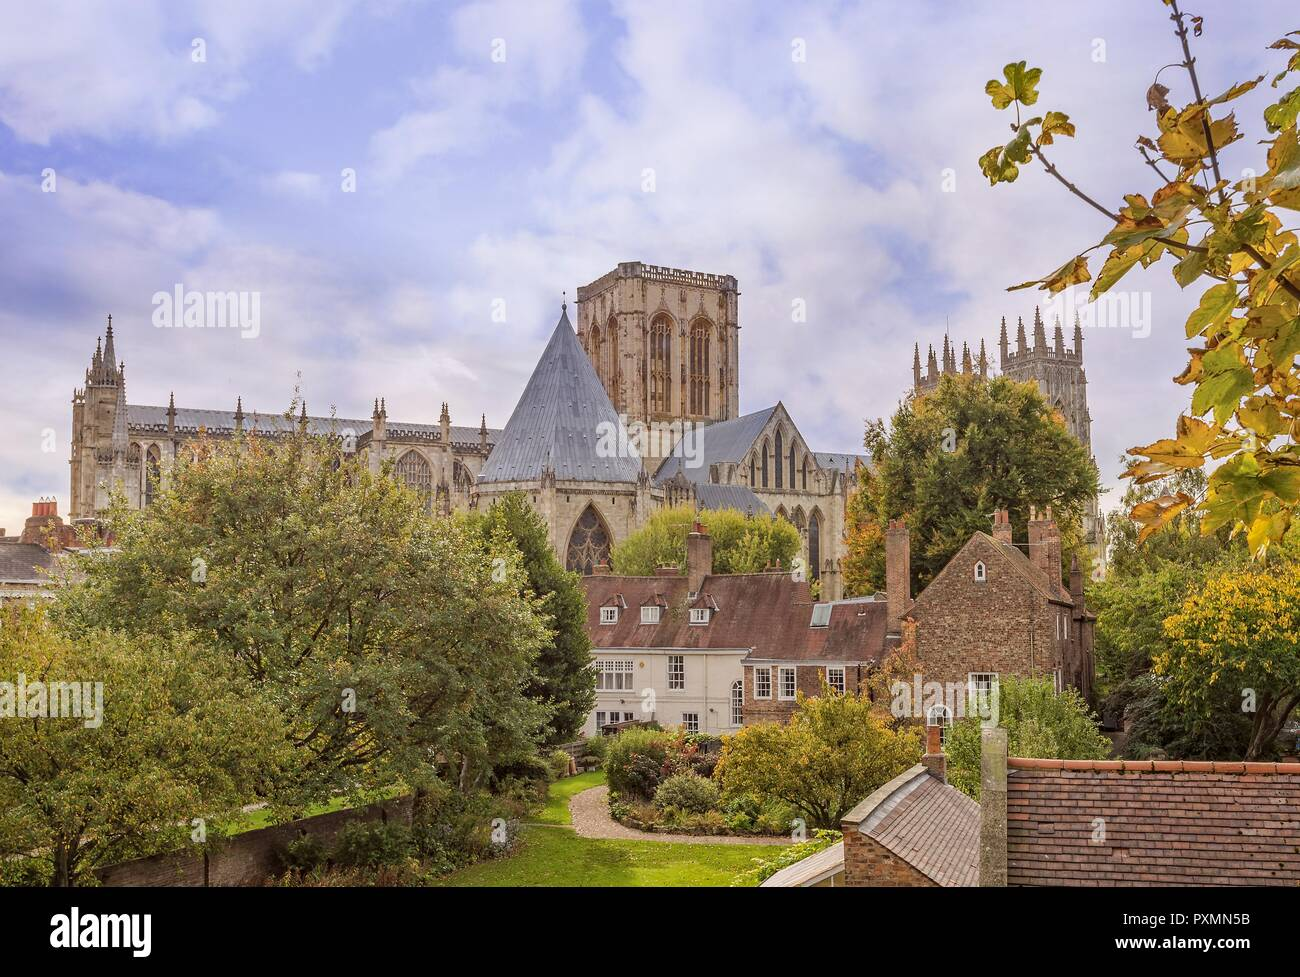 York Minster rises from amongst some buildings with a garden in front. Autumnal trees abound. Stock Photo